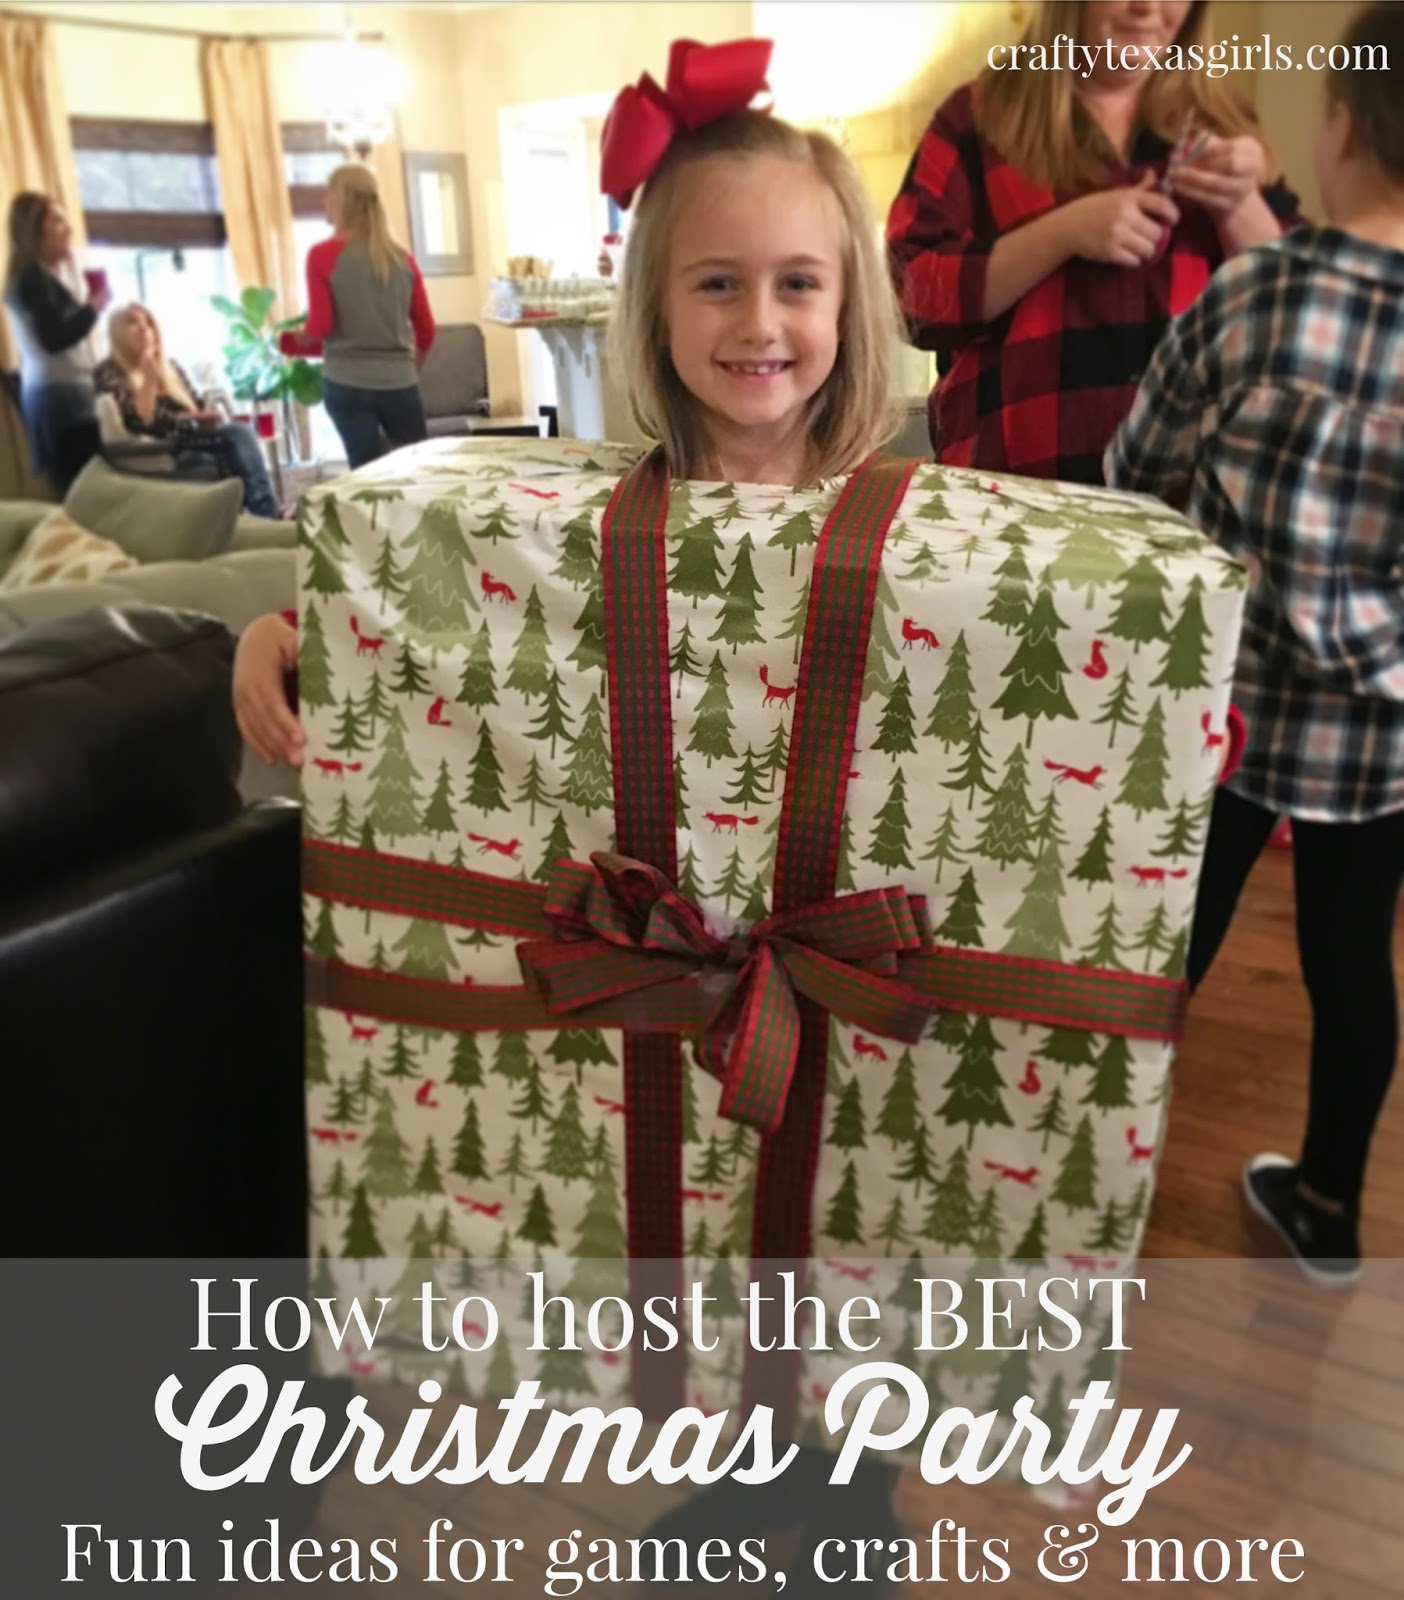 Game Ideas For Christmas Party Part - 26: The Name Game: As The Girls Came In, They Used The Elf Name Chart To Find  Out Their U0027official Elf Nameu0027. They Wrote Their U0027Elf Namesu0027 On Name Tags  And Kept ...